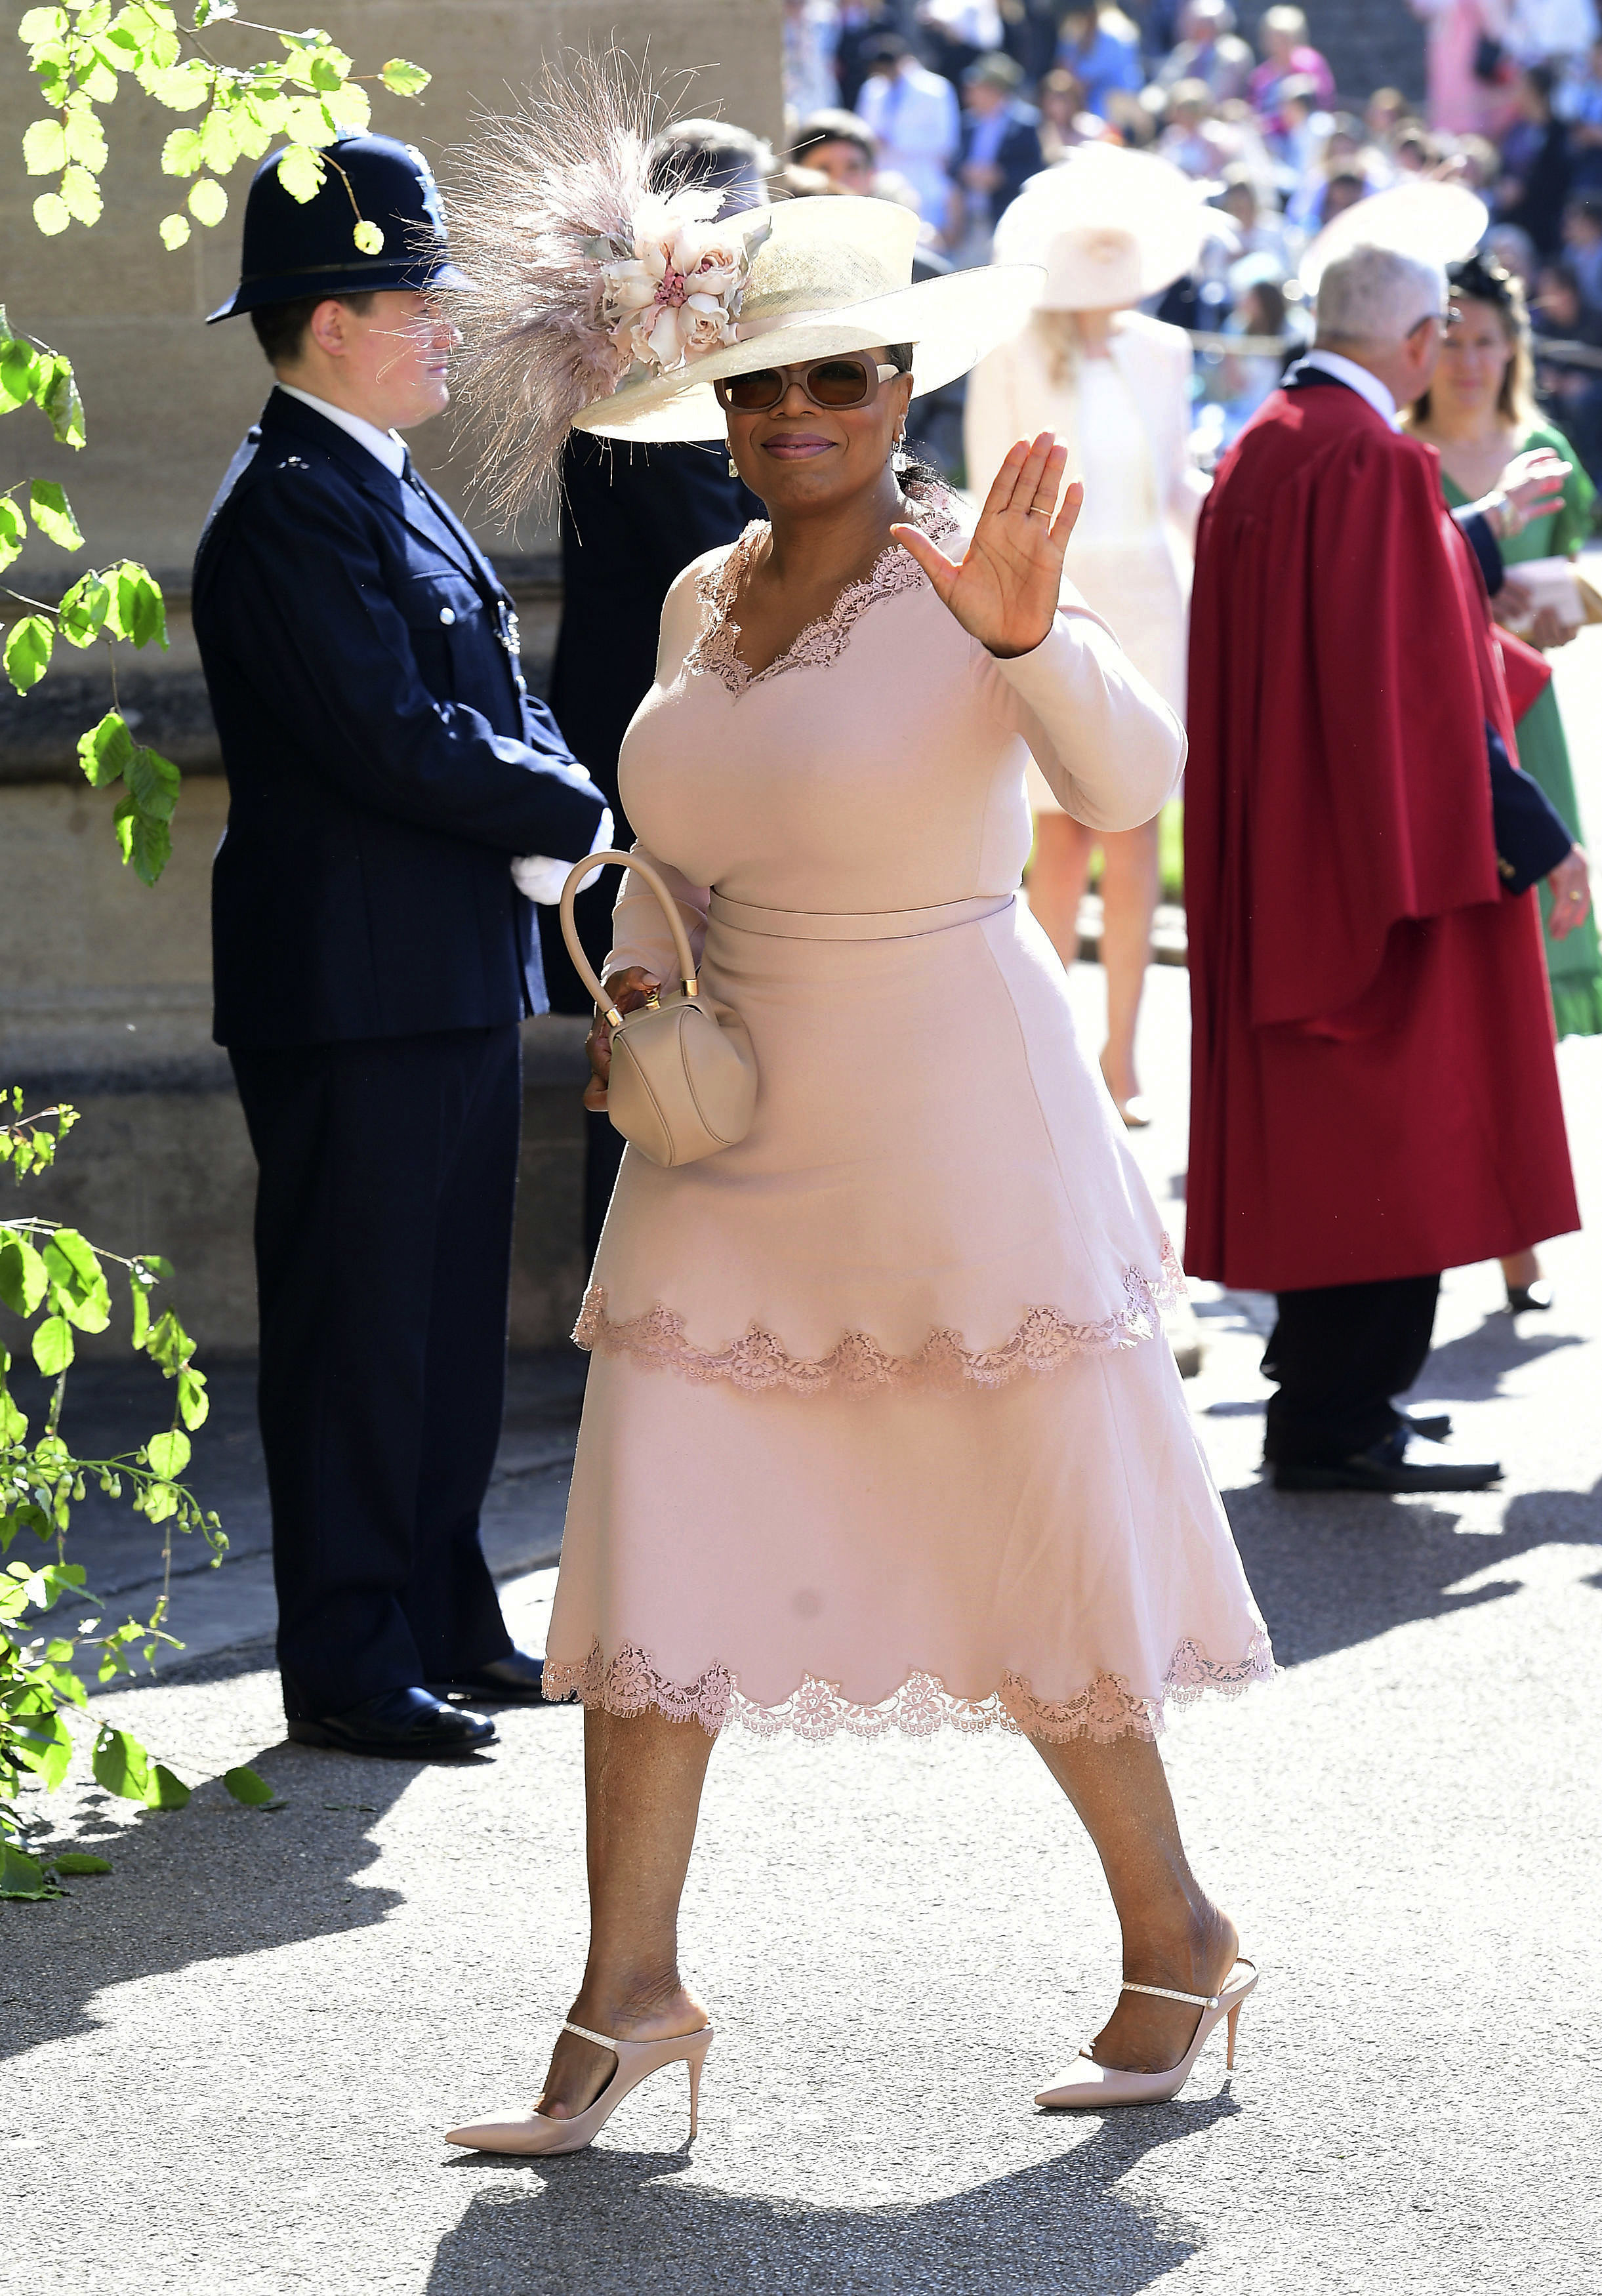 Pictures Of Royal Wedding.Wedding Guest Fashion Bold And Bright At Windsor Cnn Style